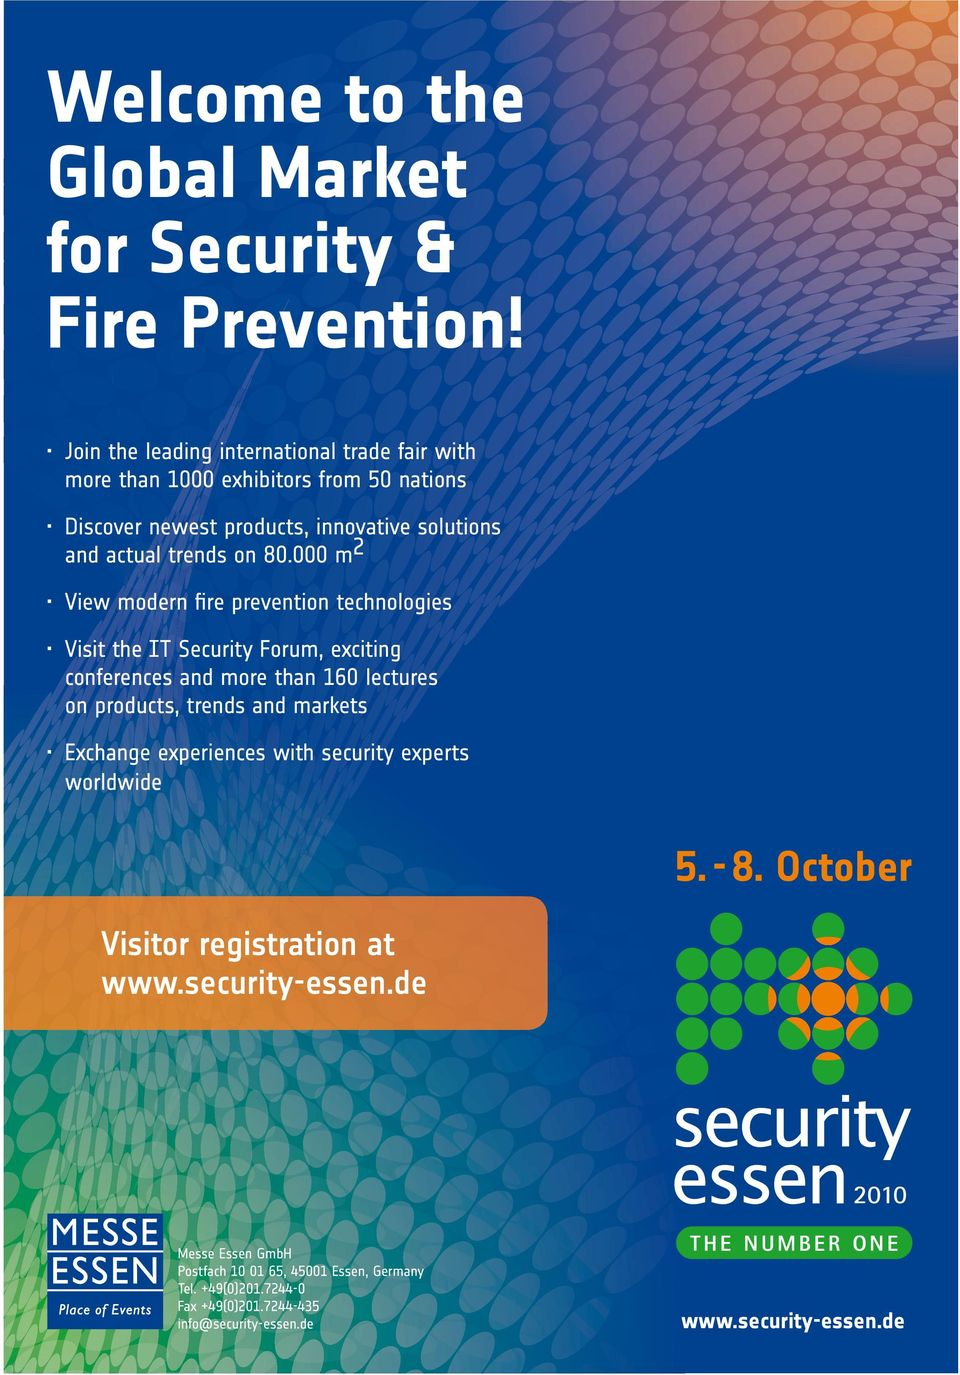 000 m2 View modern fire prevention technologies Visit the IT Security Forum, exciting conferences and more than 160 lectures on products, trends and markets Exchange experiences